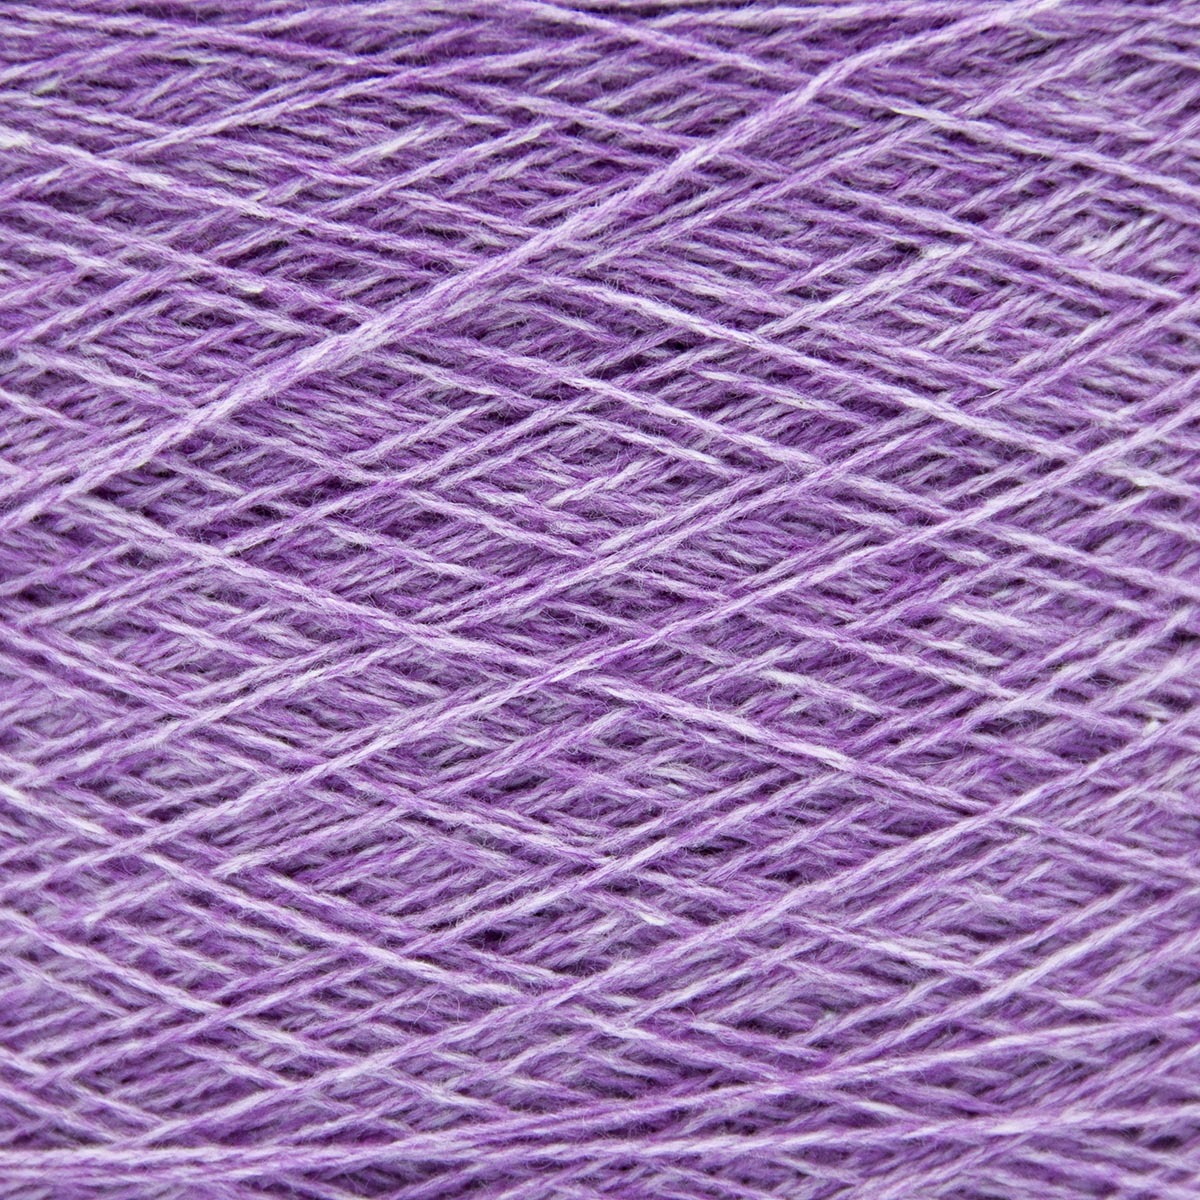 Knoll Yarns Coast - 032